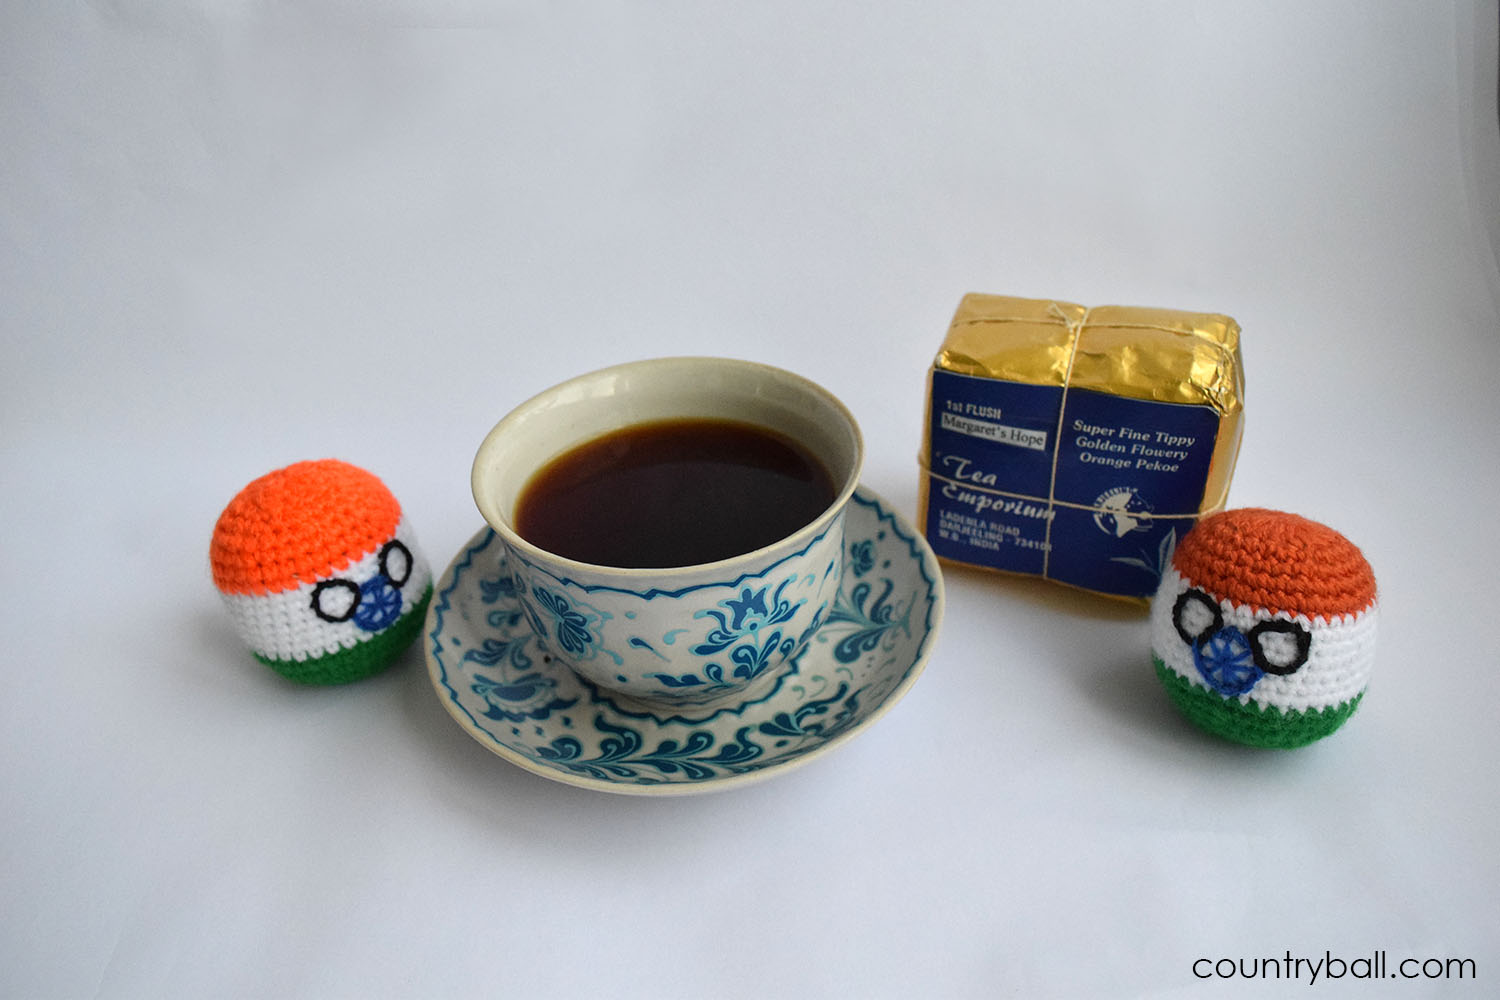 Indiaball with an amazing Tea from Darjeeling